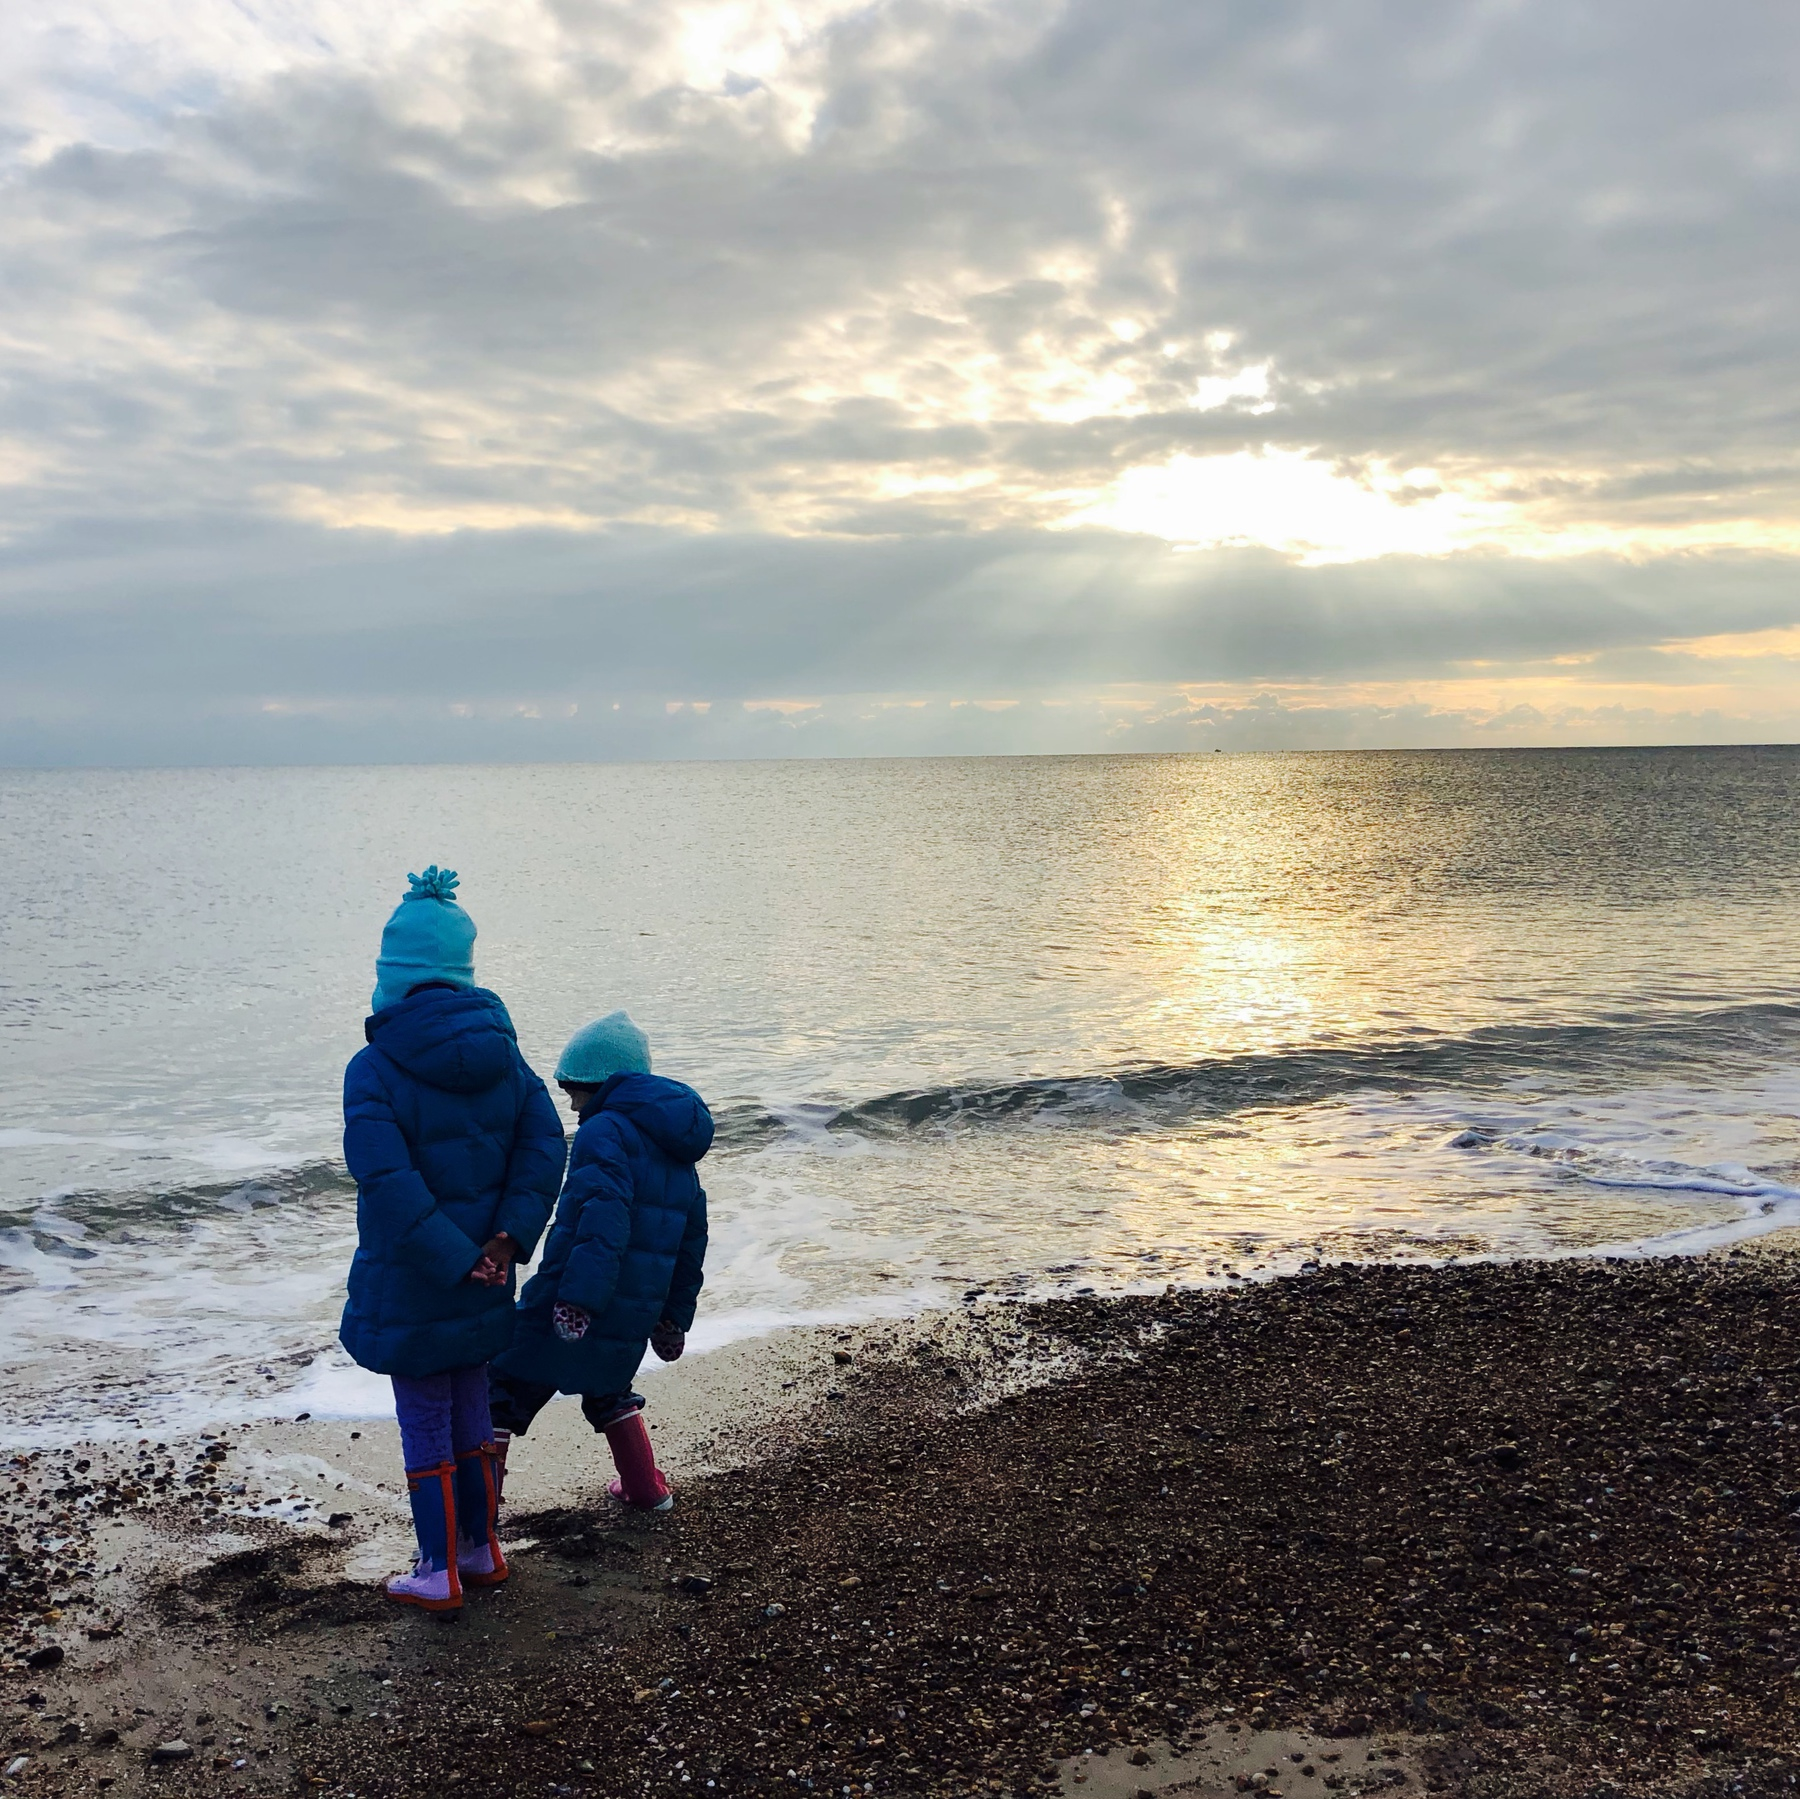 Two girls on a winter shoreline